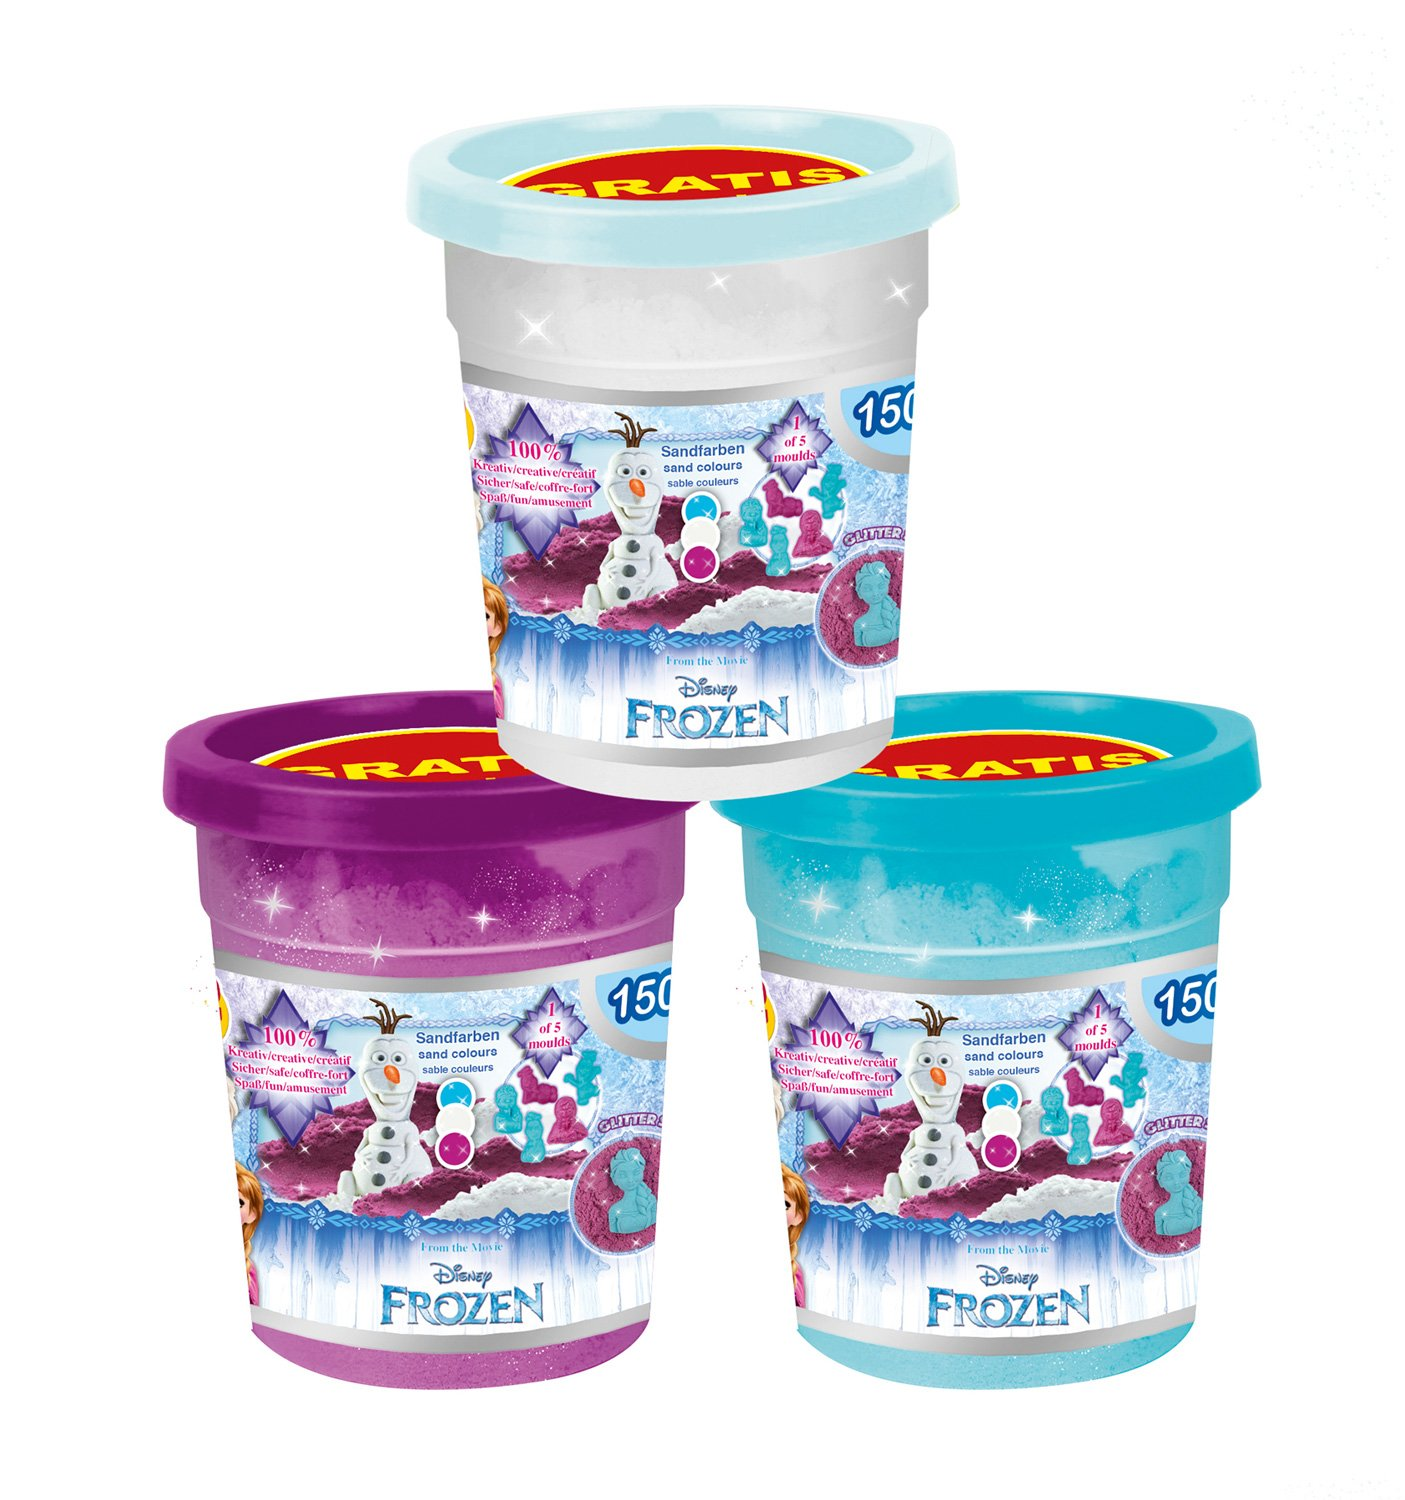 CRAZE 56197/ /Assorted /Frozen Magic Sand Refill 450/g Sparkling Sand with Can Tin/